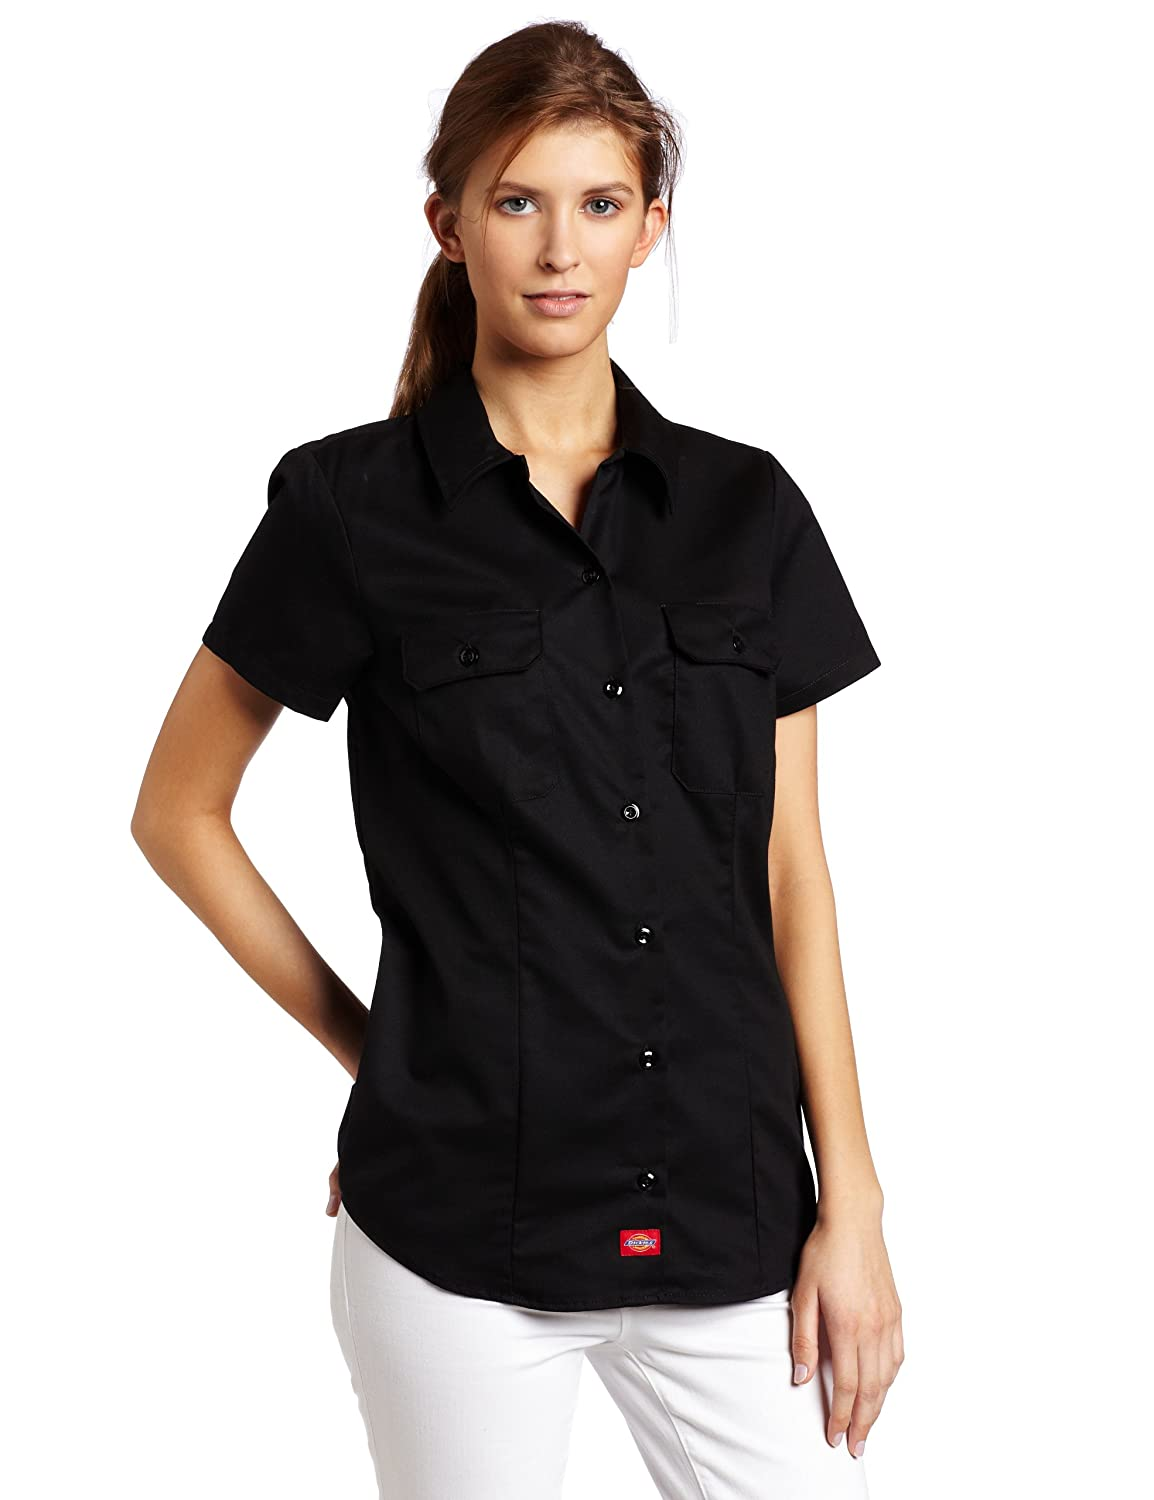 Dickies Women's Short-Sleeve Work Shirt at Amazon Women's Clothing ...